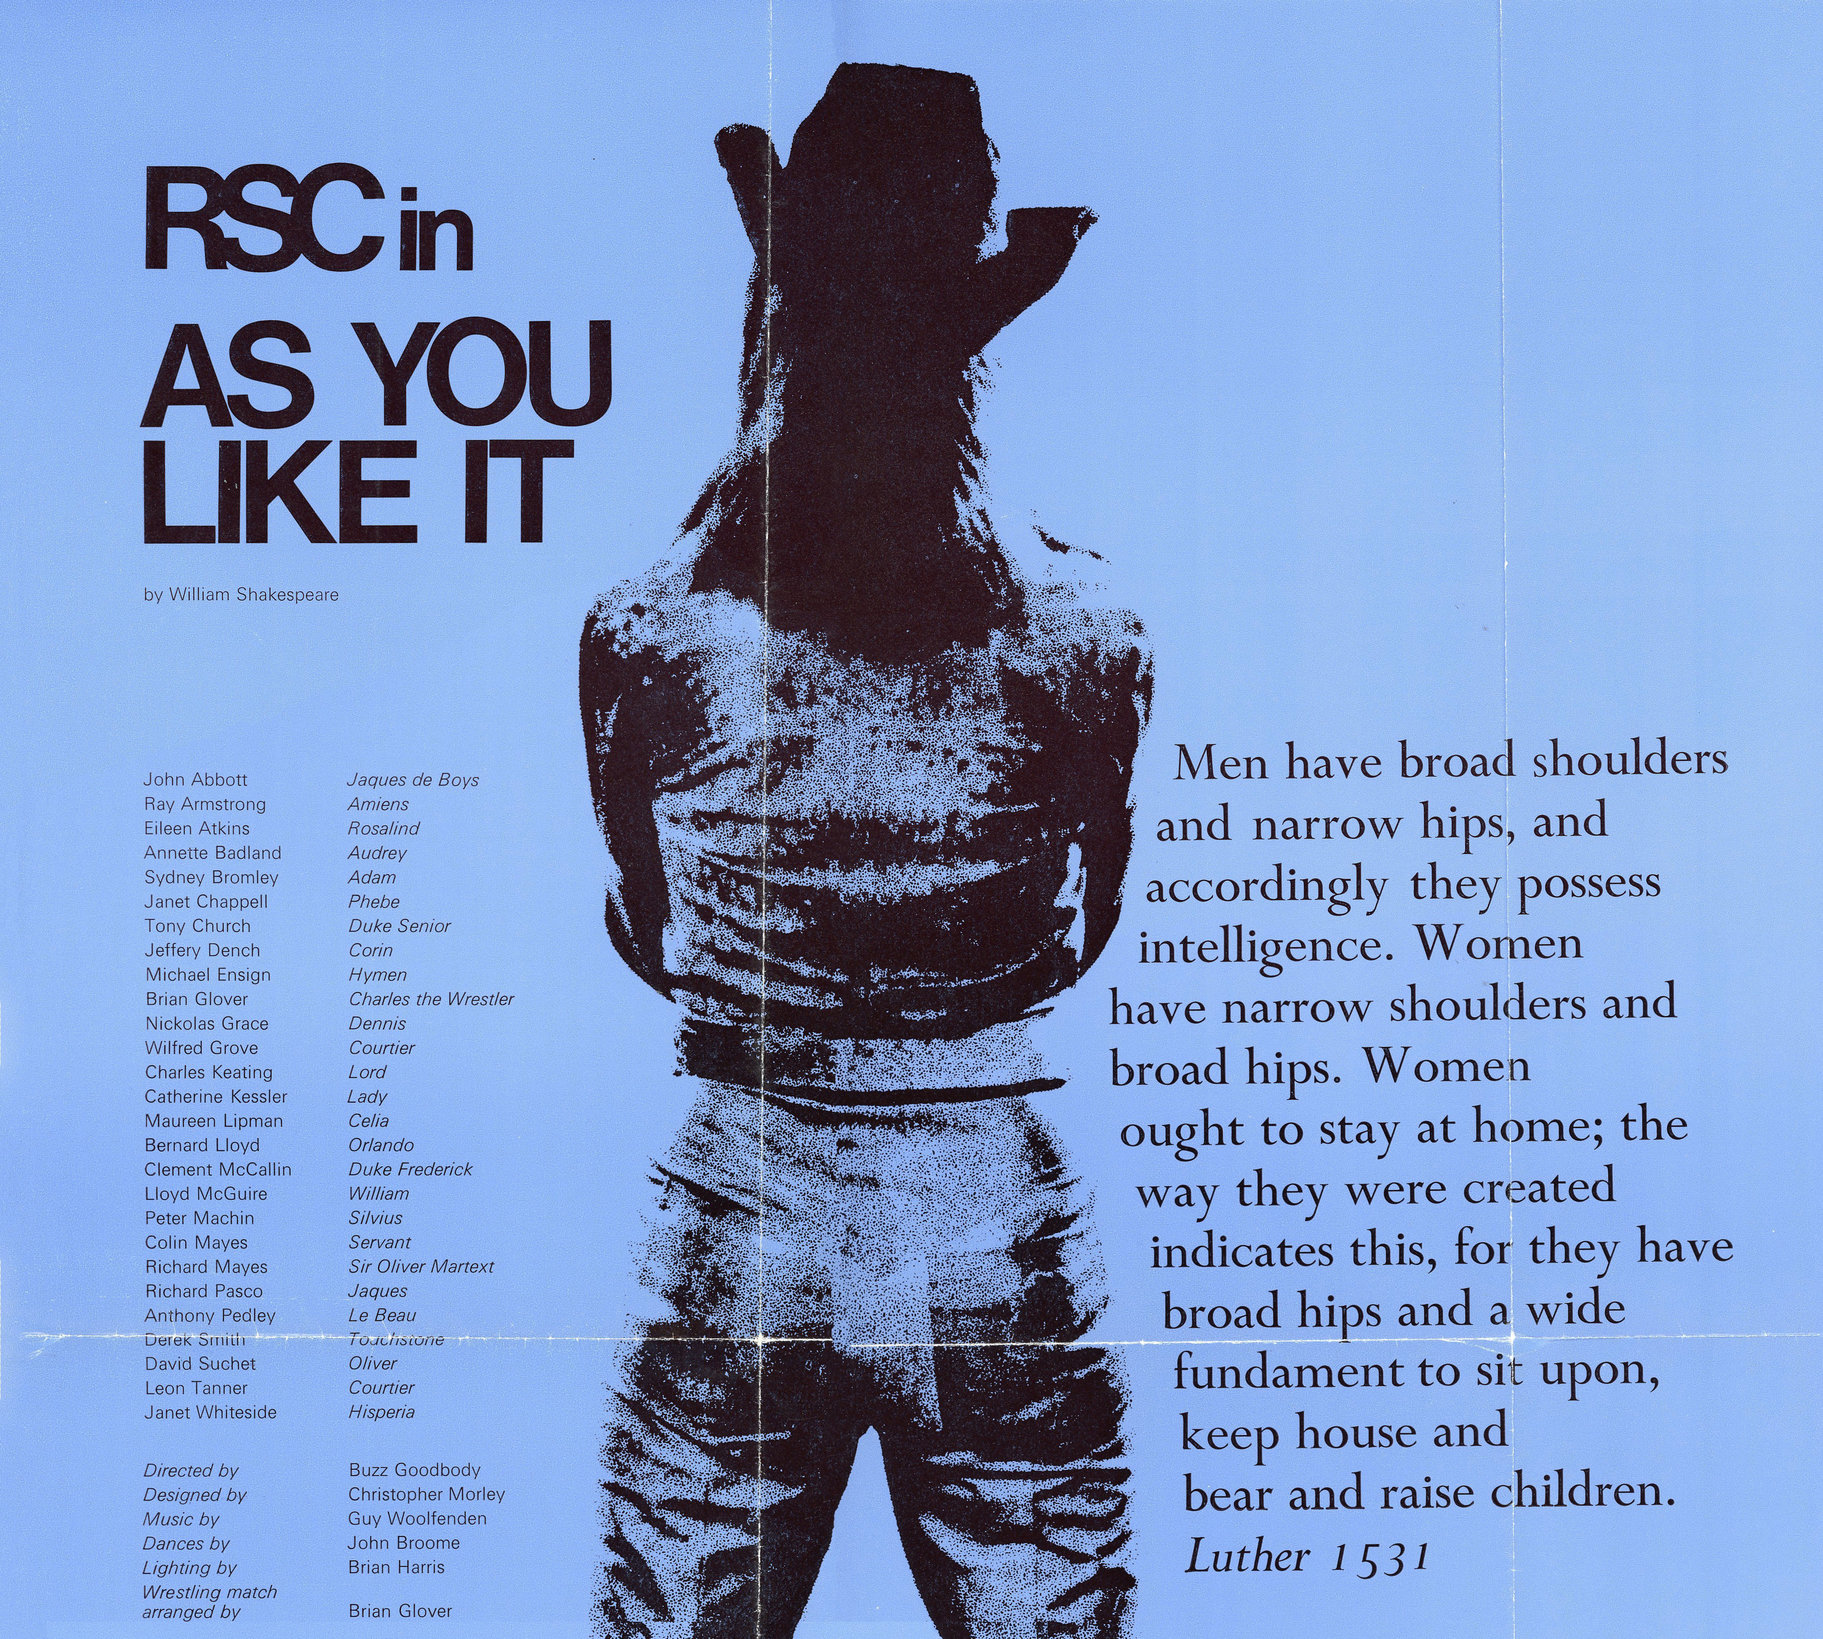 Theatrical poster for As You Like It 1973 on blue background, featuring cast list,  quote from Martin Luther and rear view of jeans wearing Rosalind